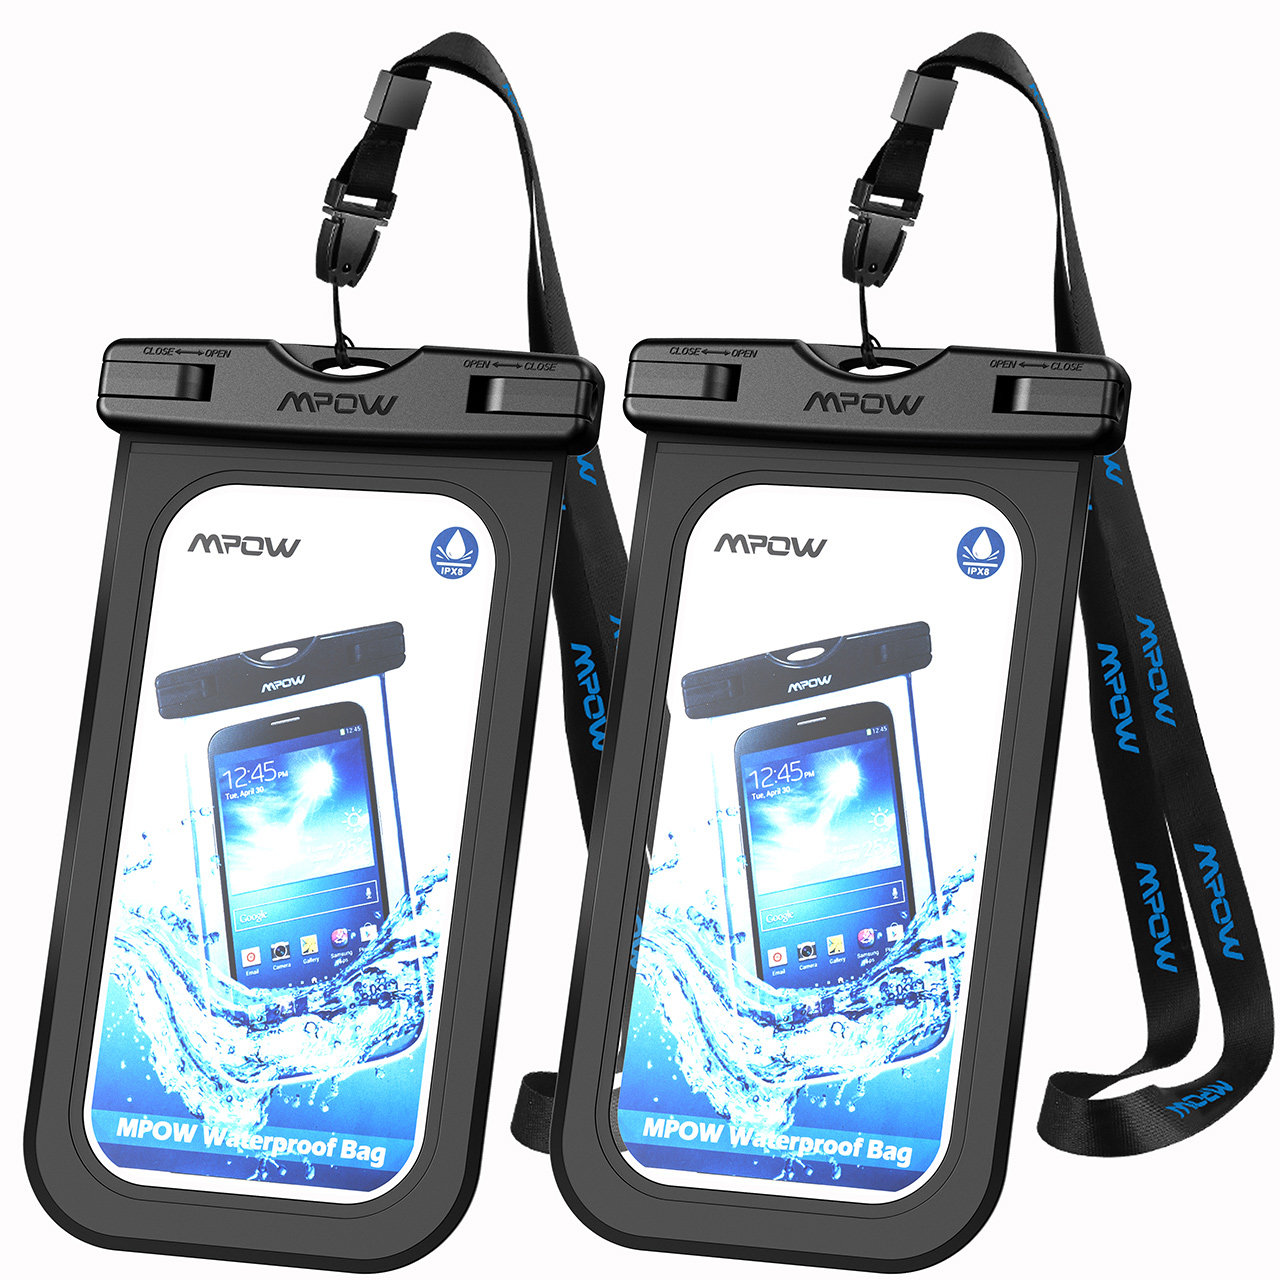 Mpow 2 Pack Waterproof Case, IPX 8 Cellphone Dry Bag for iPhone, Google Pixel, HTC, LG, Huawei, Sony, Nokia and other Phones (Black)